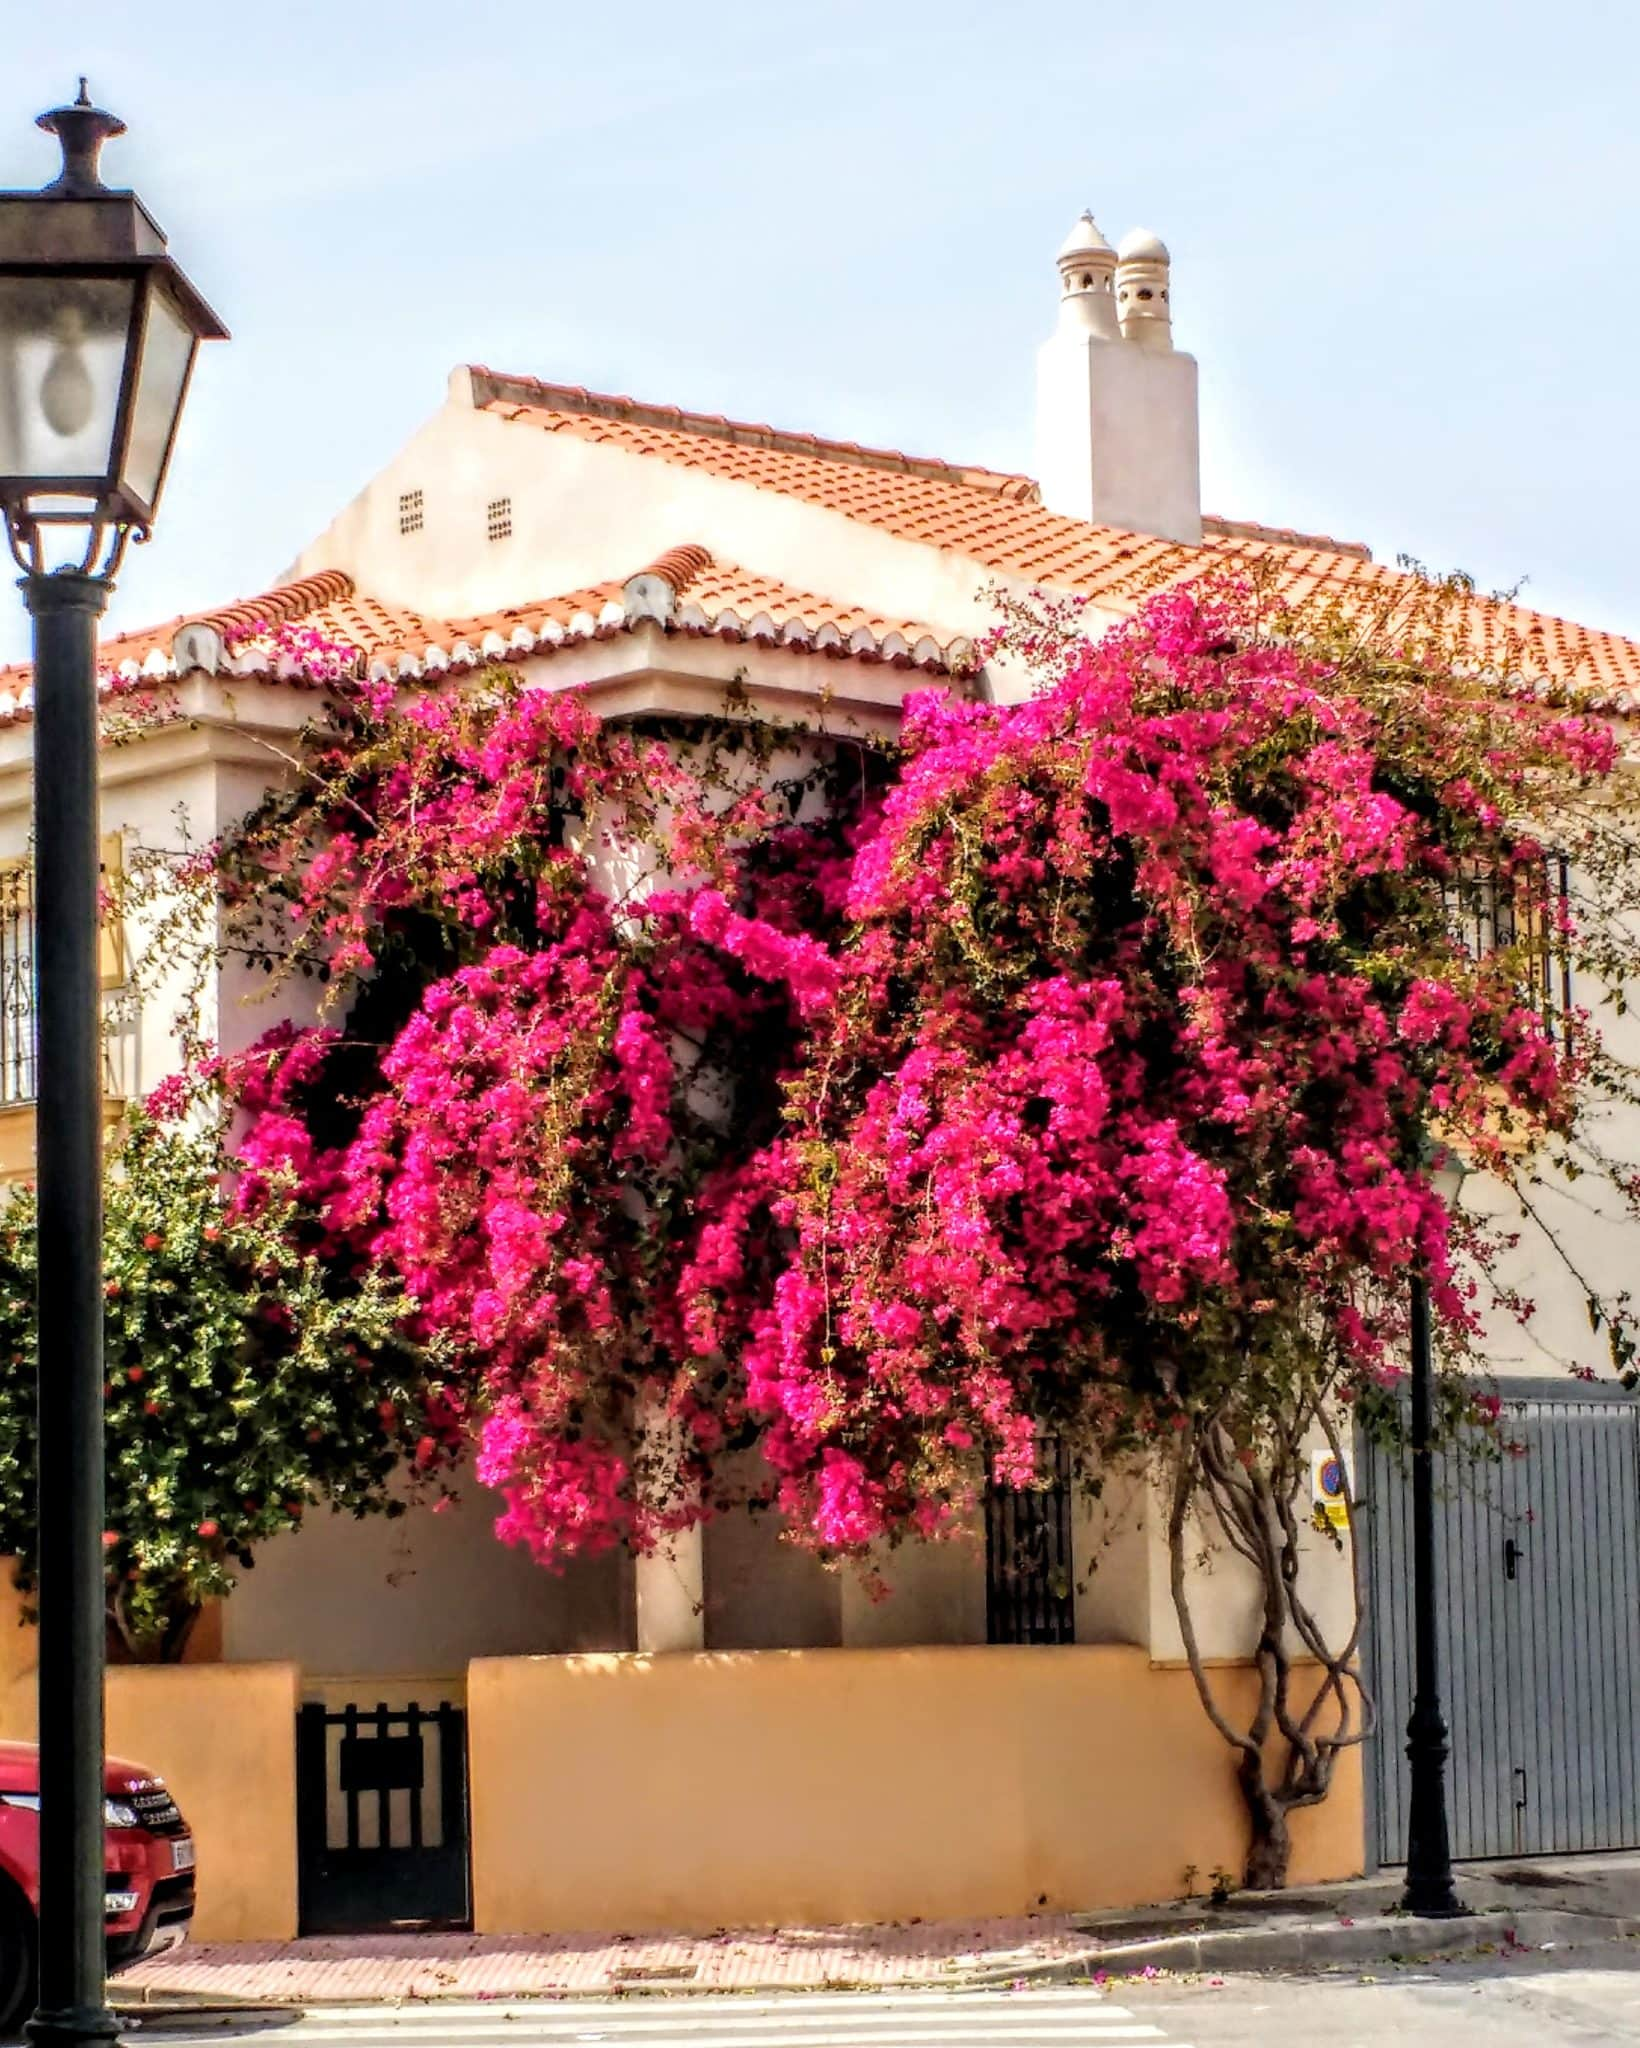 Salobreña Spain a charming whitewashed village in Andalucia